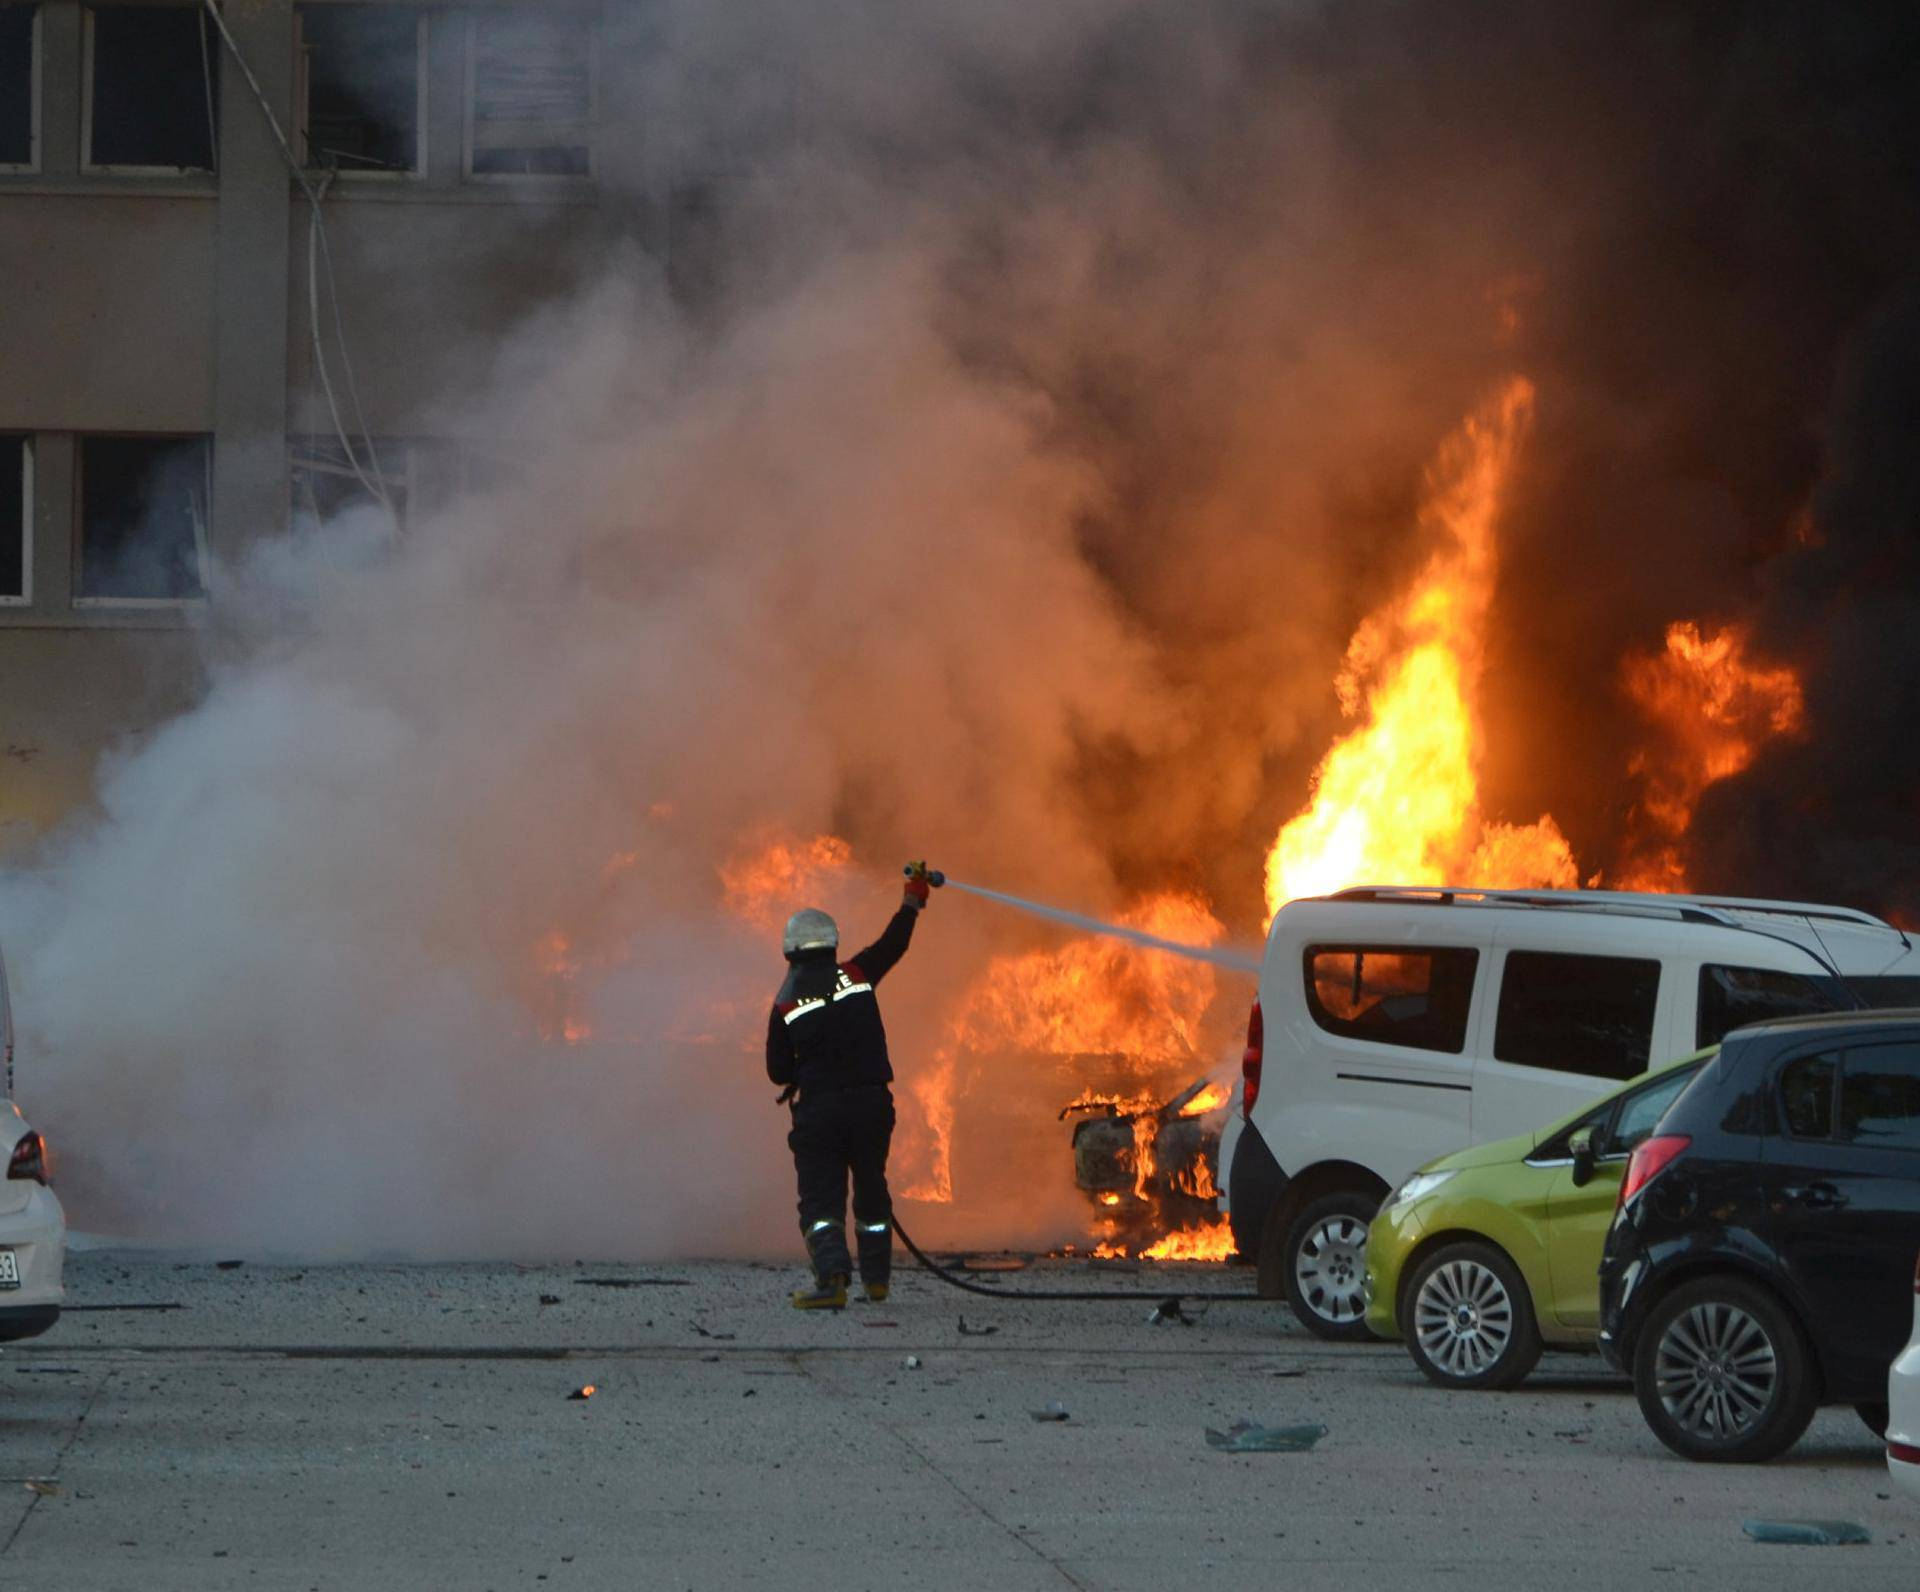 A firefighter tries to extinguish burning vehicles after an explosion outside the governor's office in the southern city of Adana